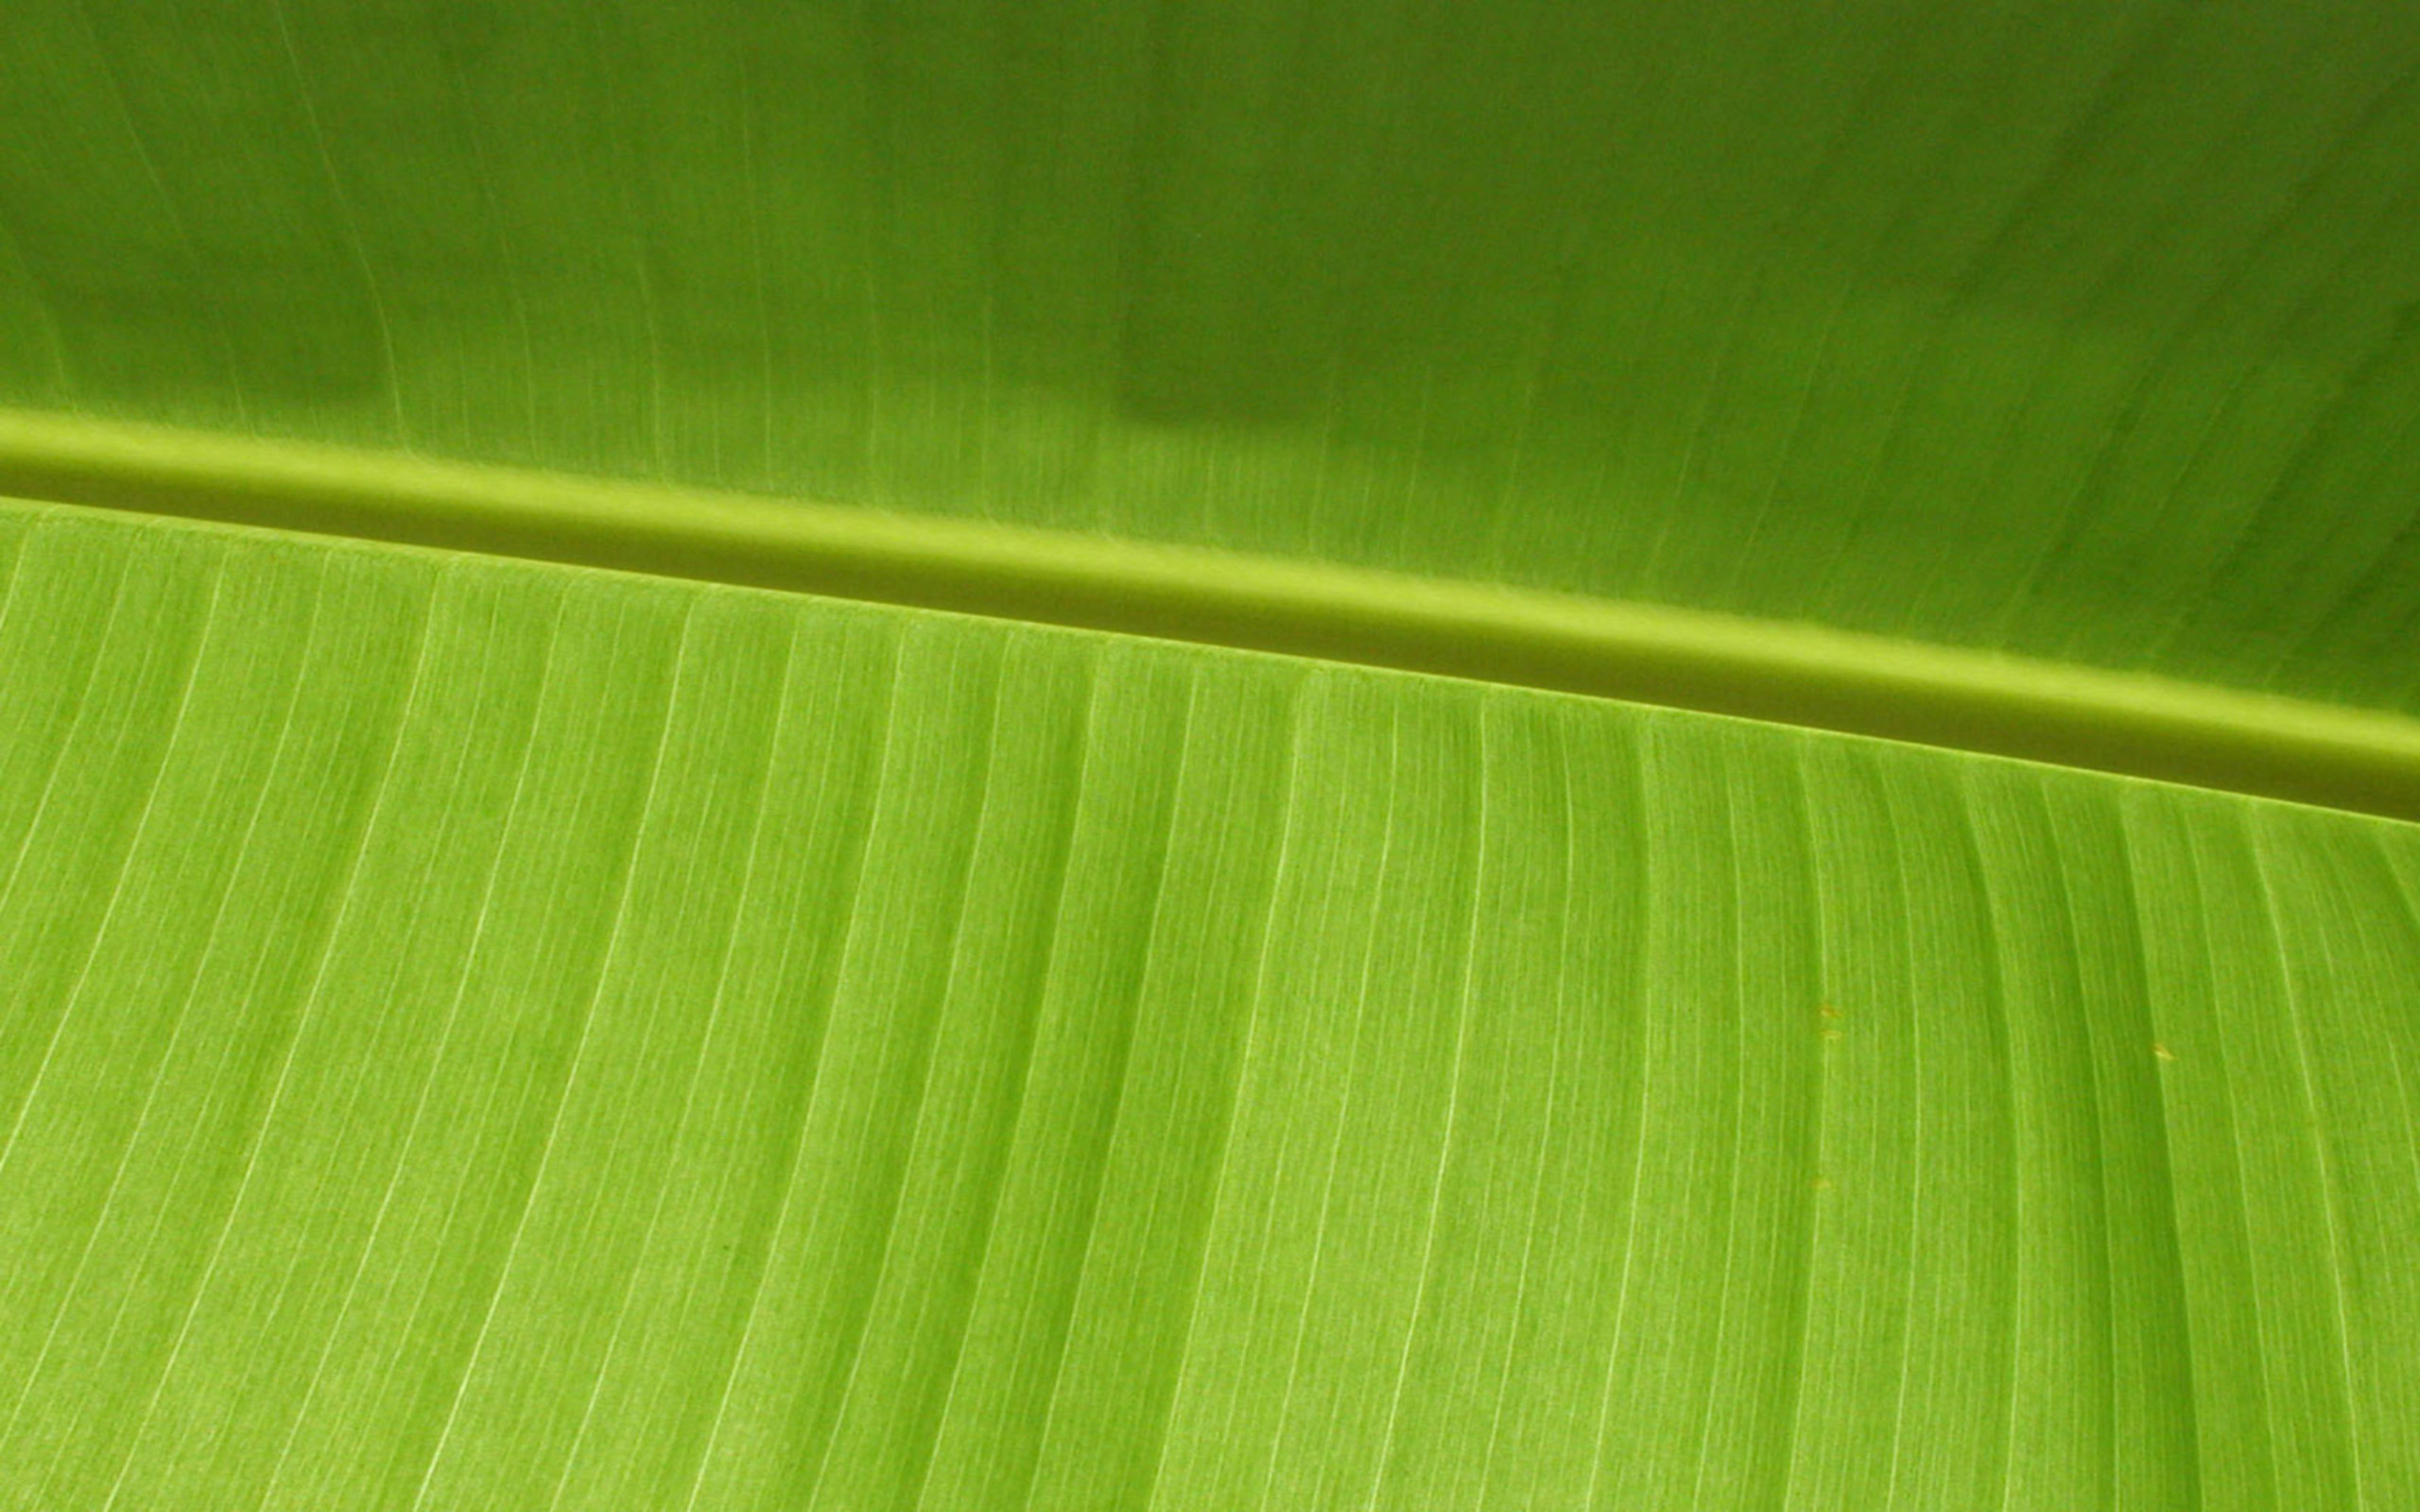 Banana leaf wallpaper 2560x1600 678 WallpaperUP 2560x1600